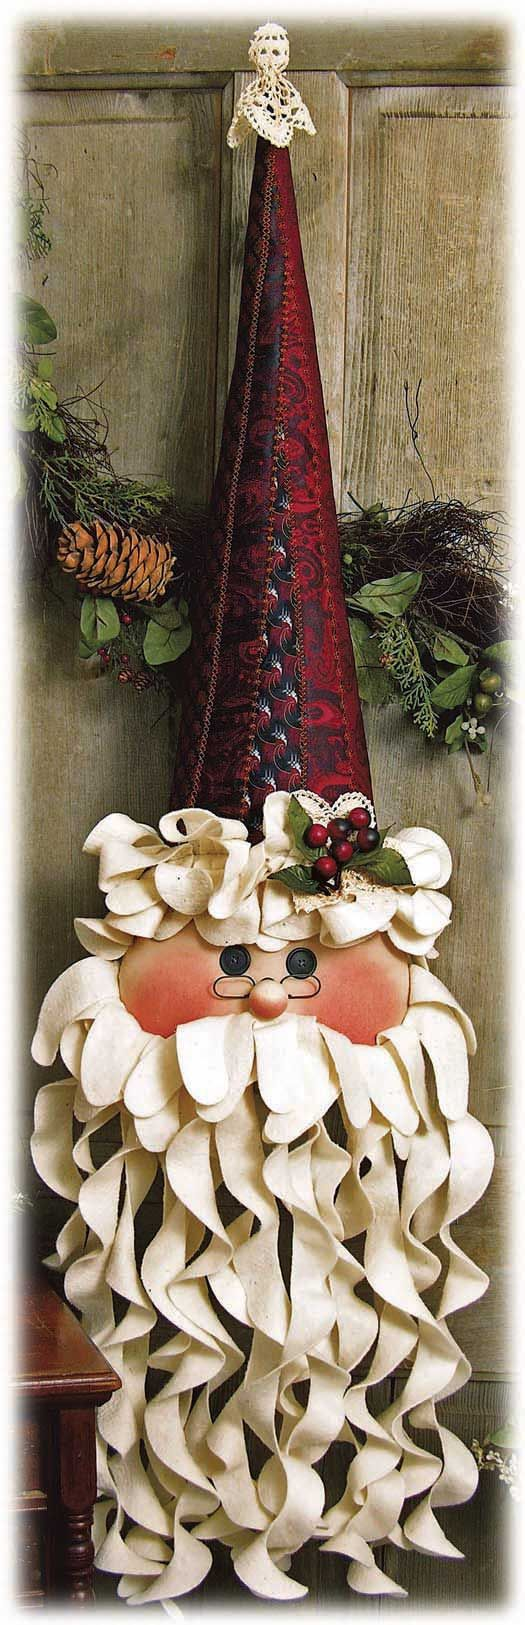 Yuletide Santa Ornament....<3